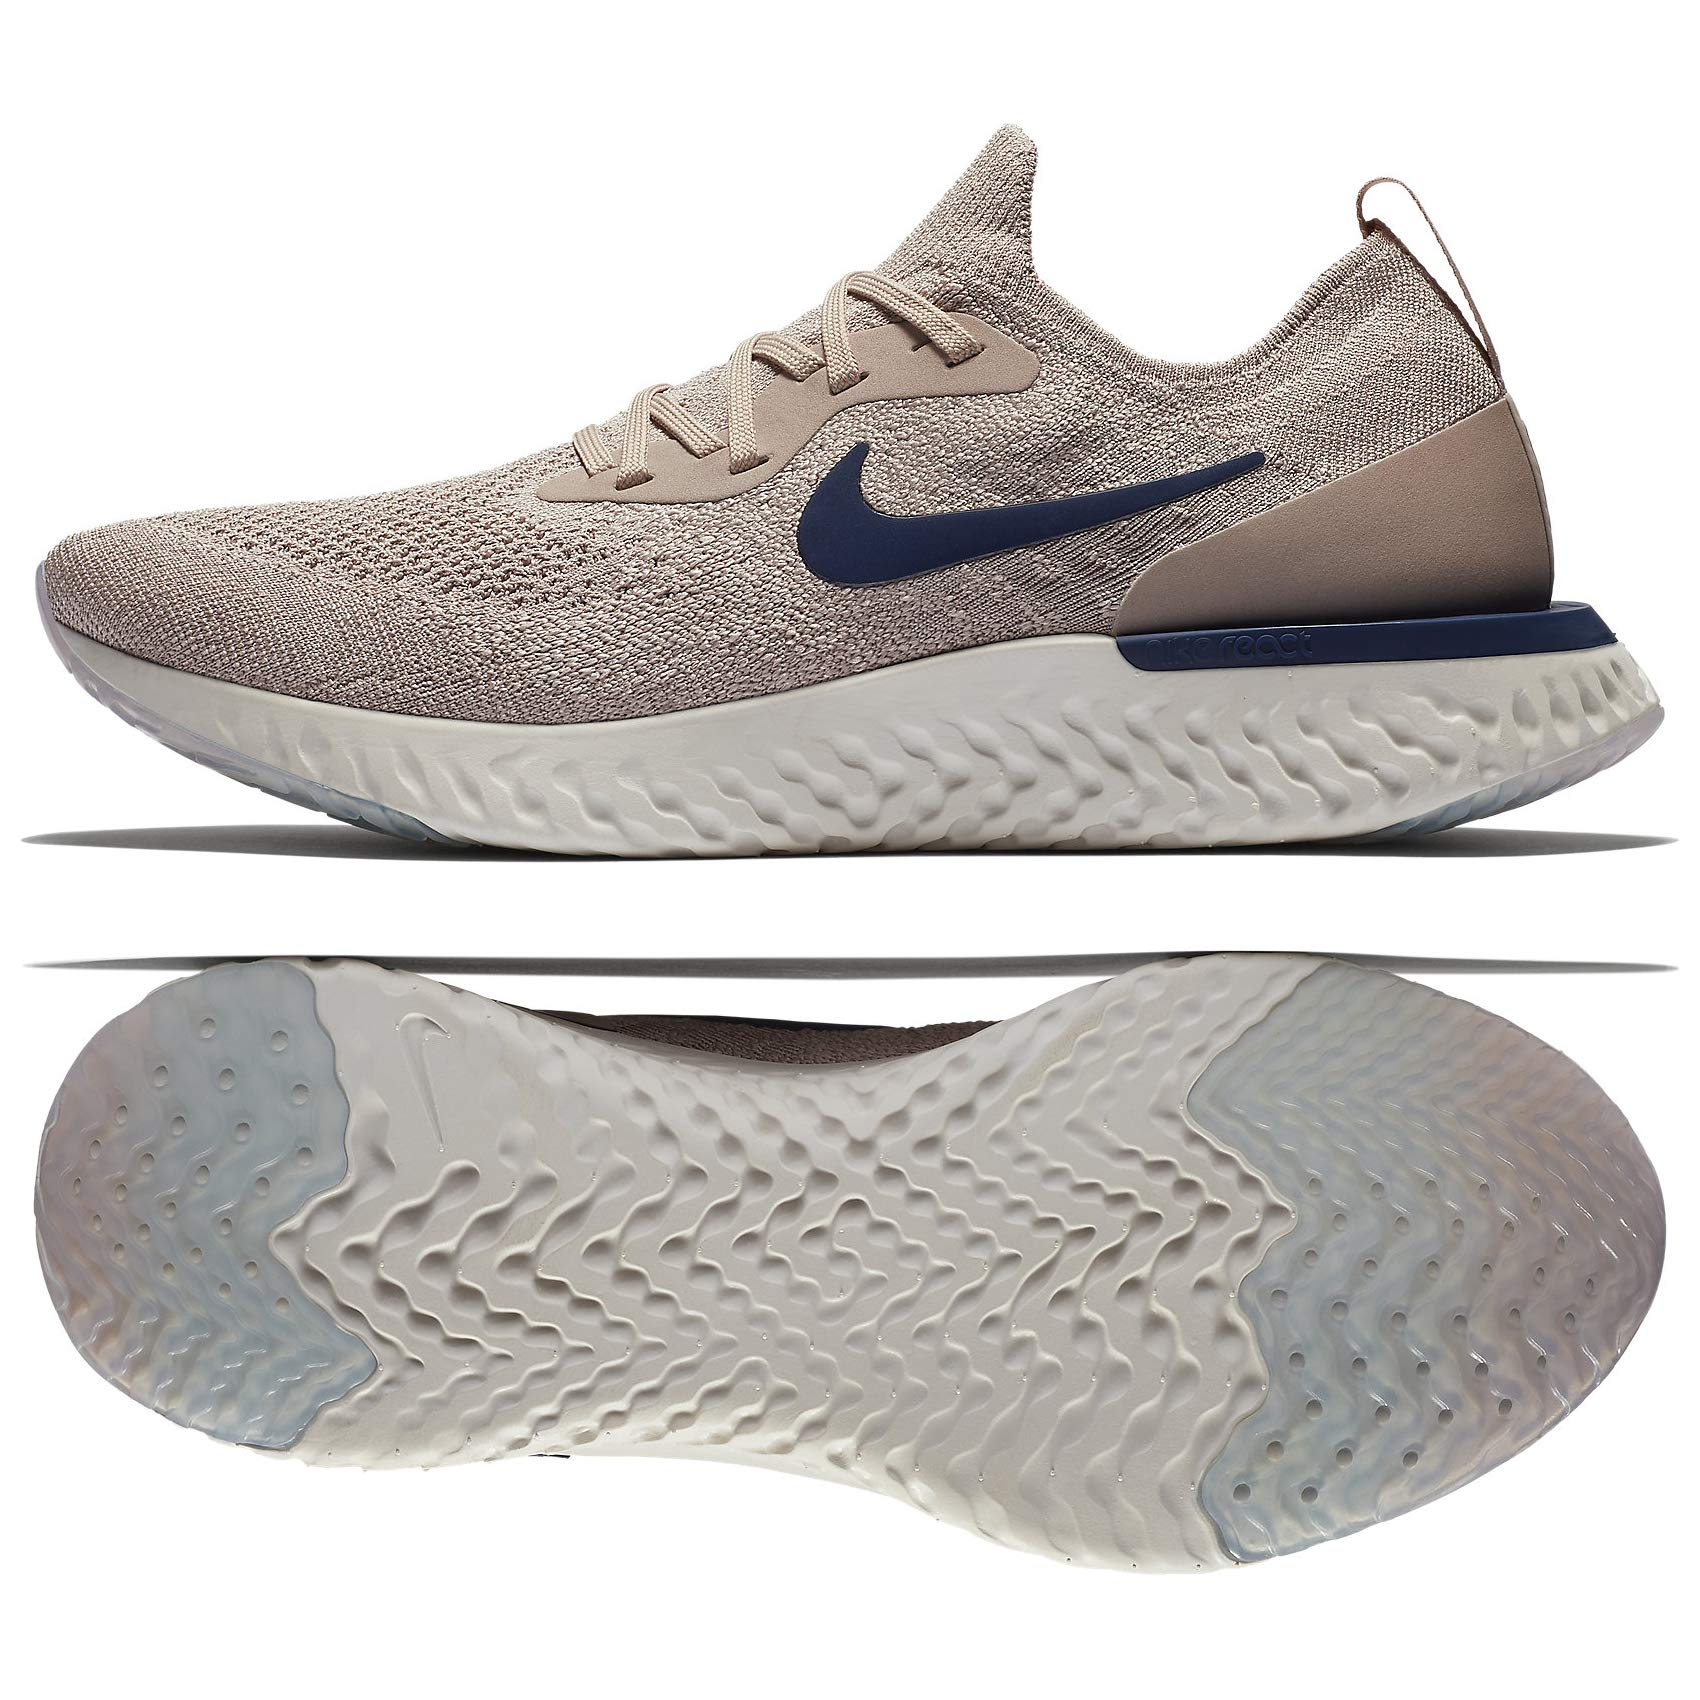 3f26e9ed60d8 Galleon - Nike Epic React Flyknit AQ0067-201 Diffused Taupe/Blue Void/ Phantom Men's Shoes (14)